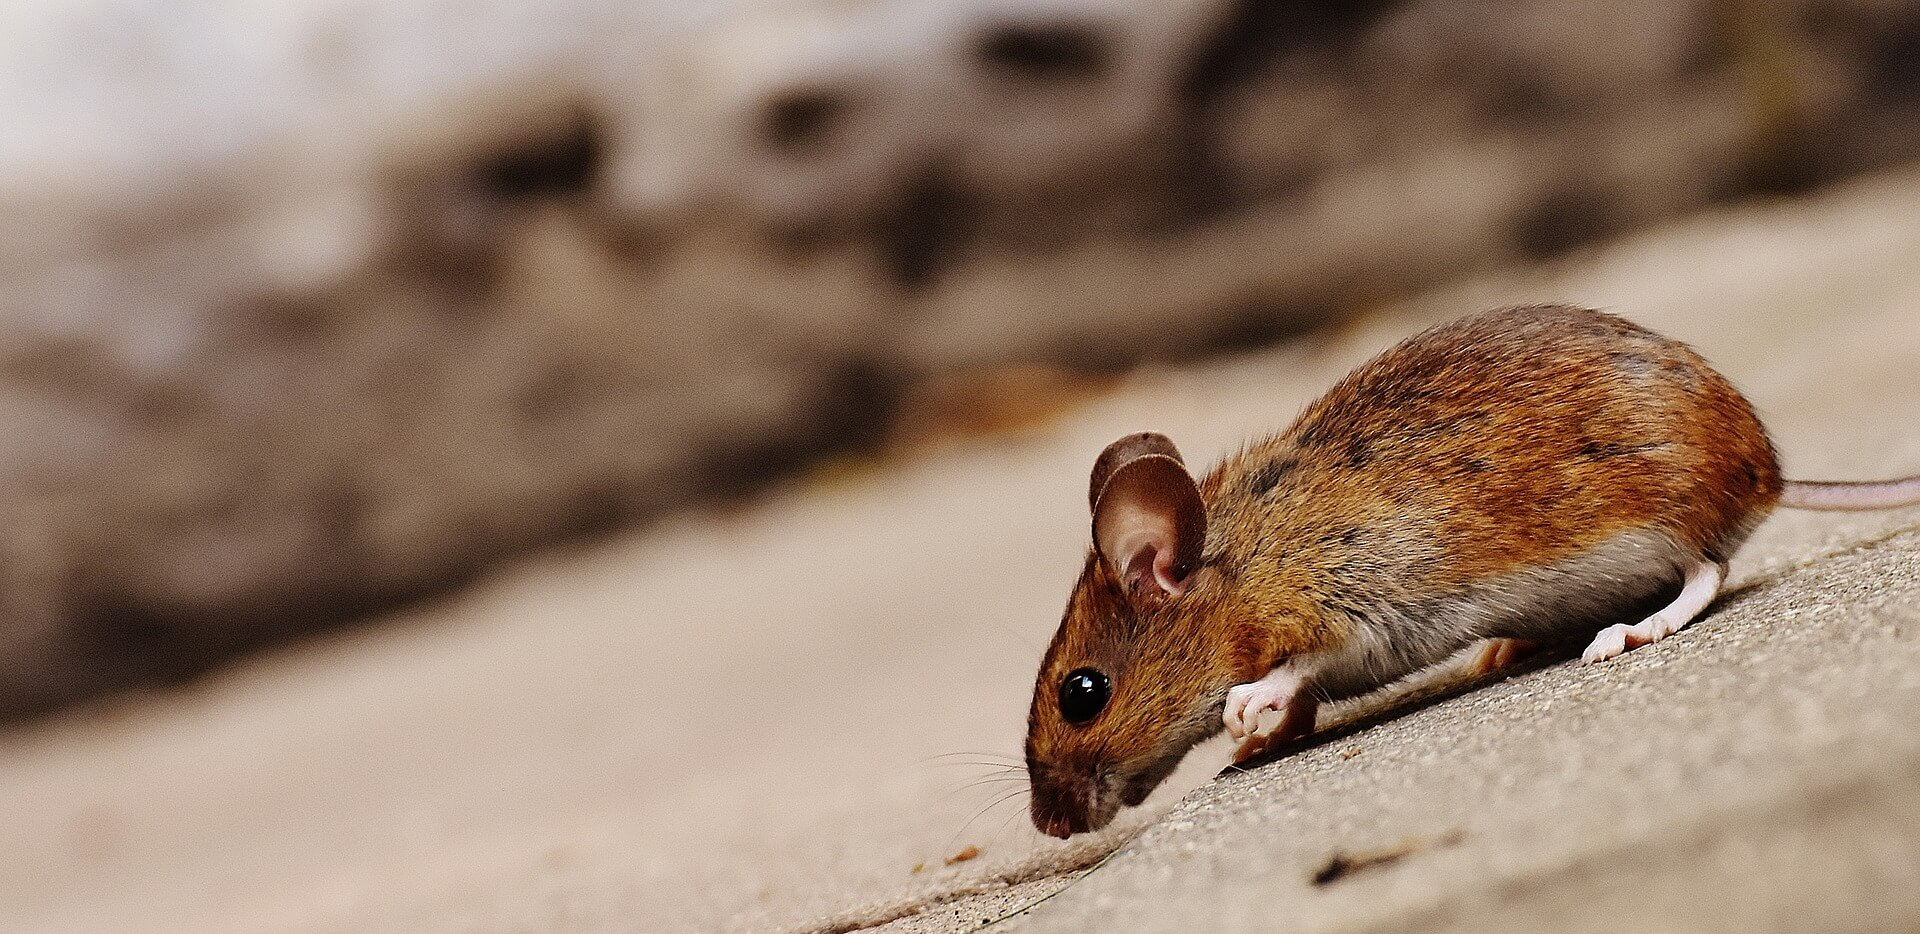 Mouse Image - On the Fly Pest Solutions 1920 X 934 JPG